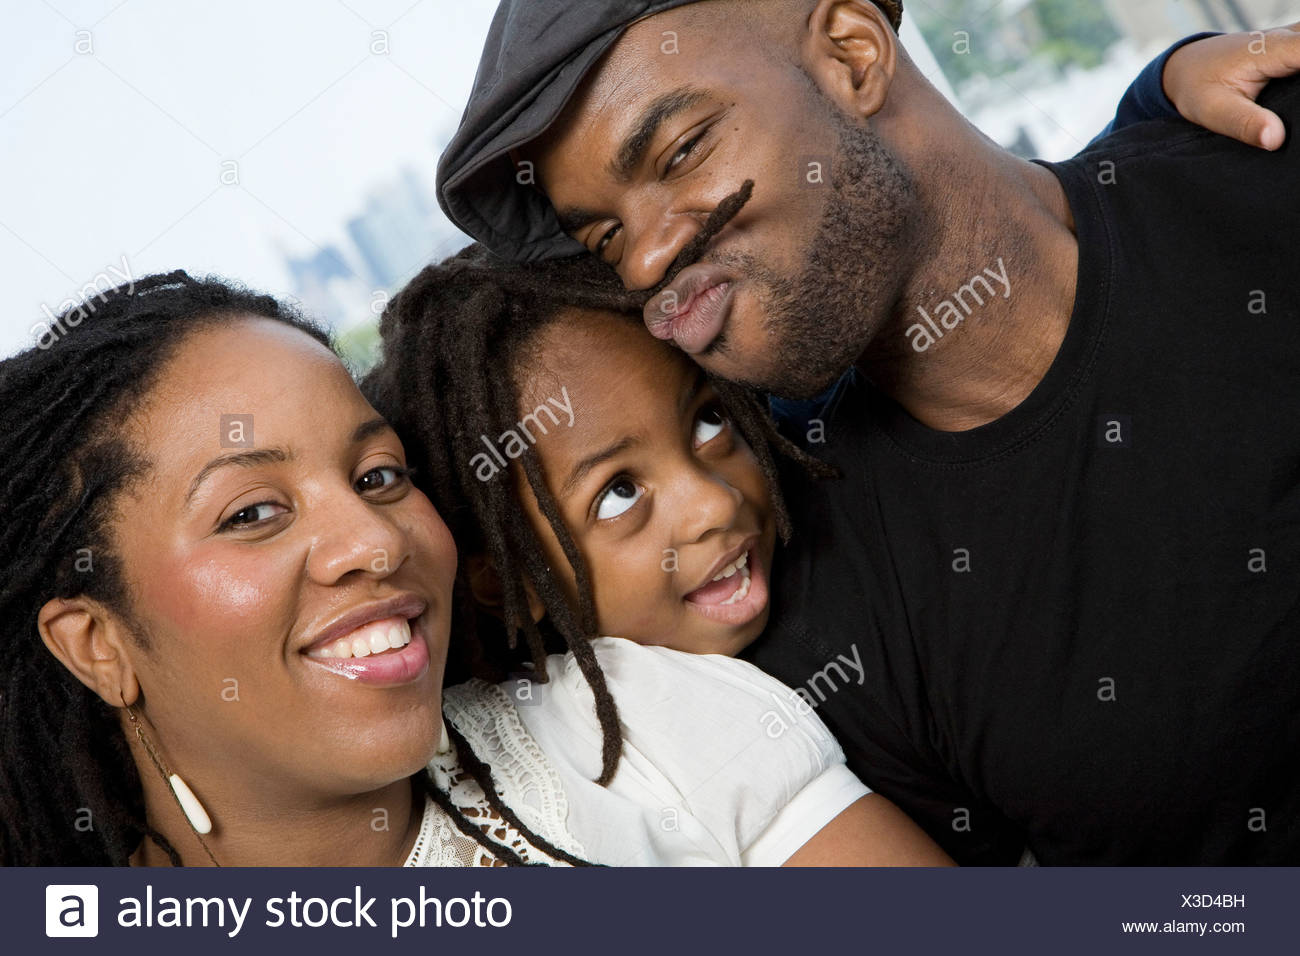 Two parents and their son goofing around - Stock Image